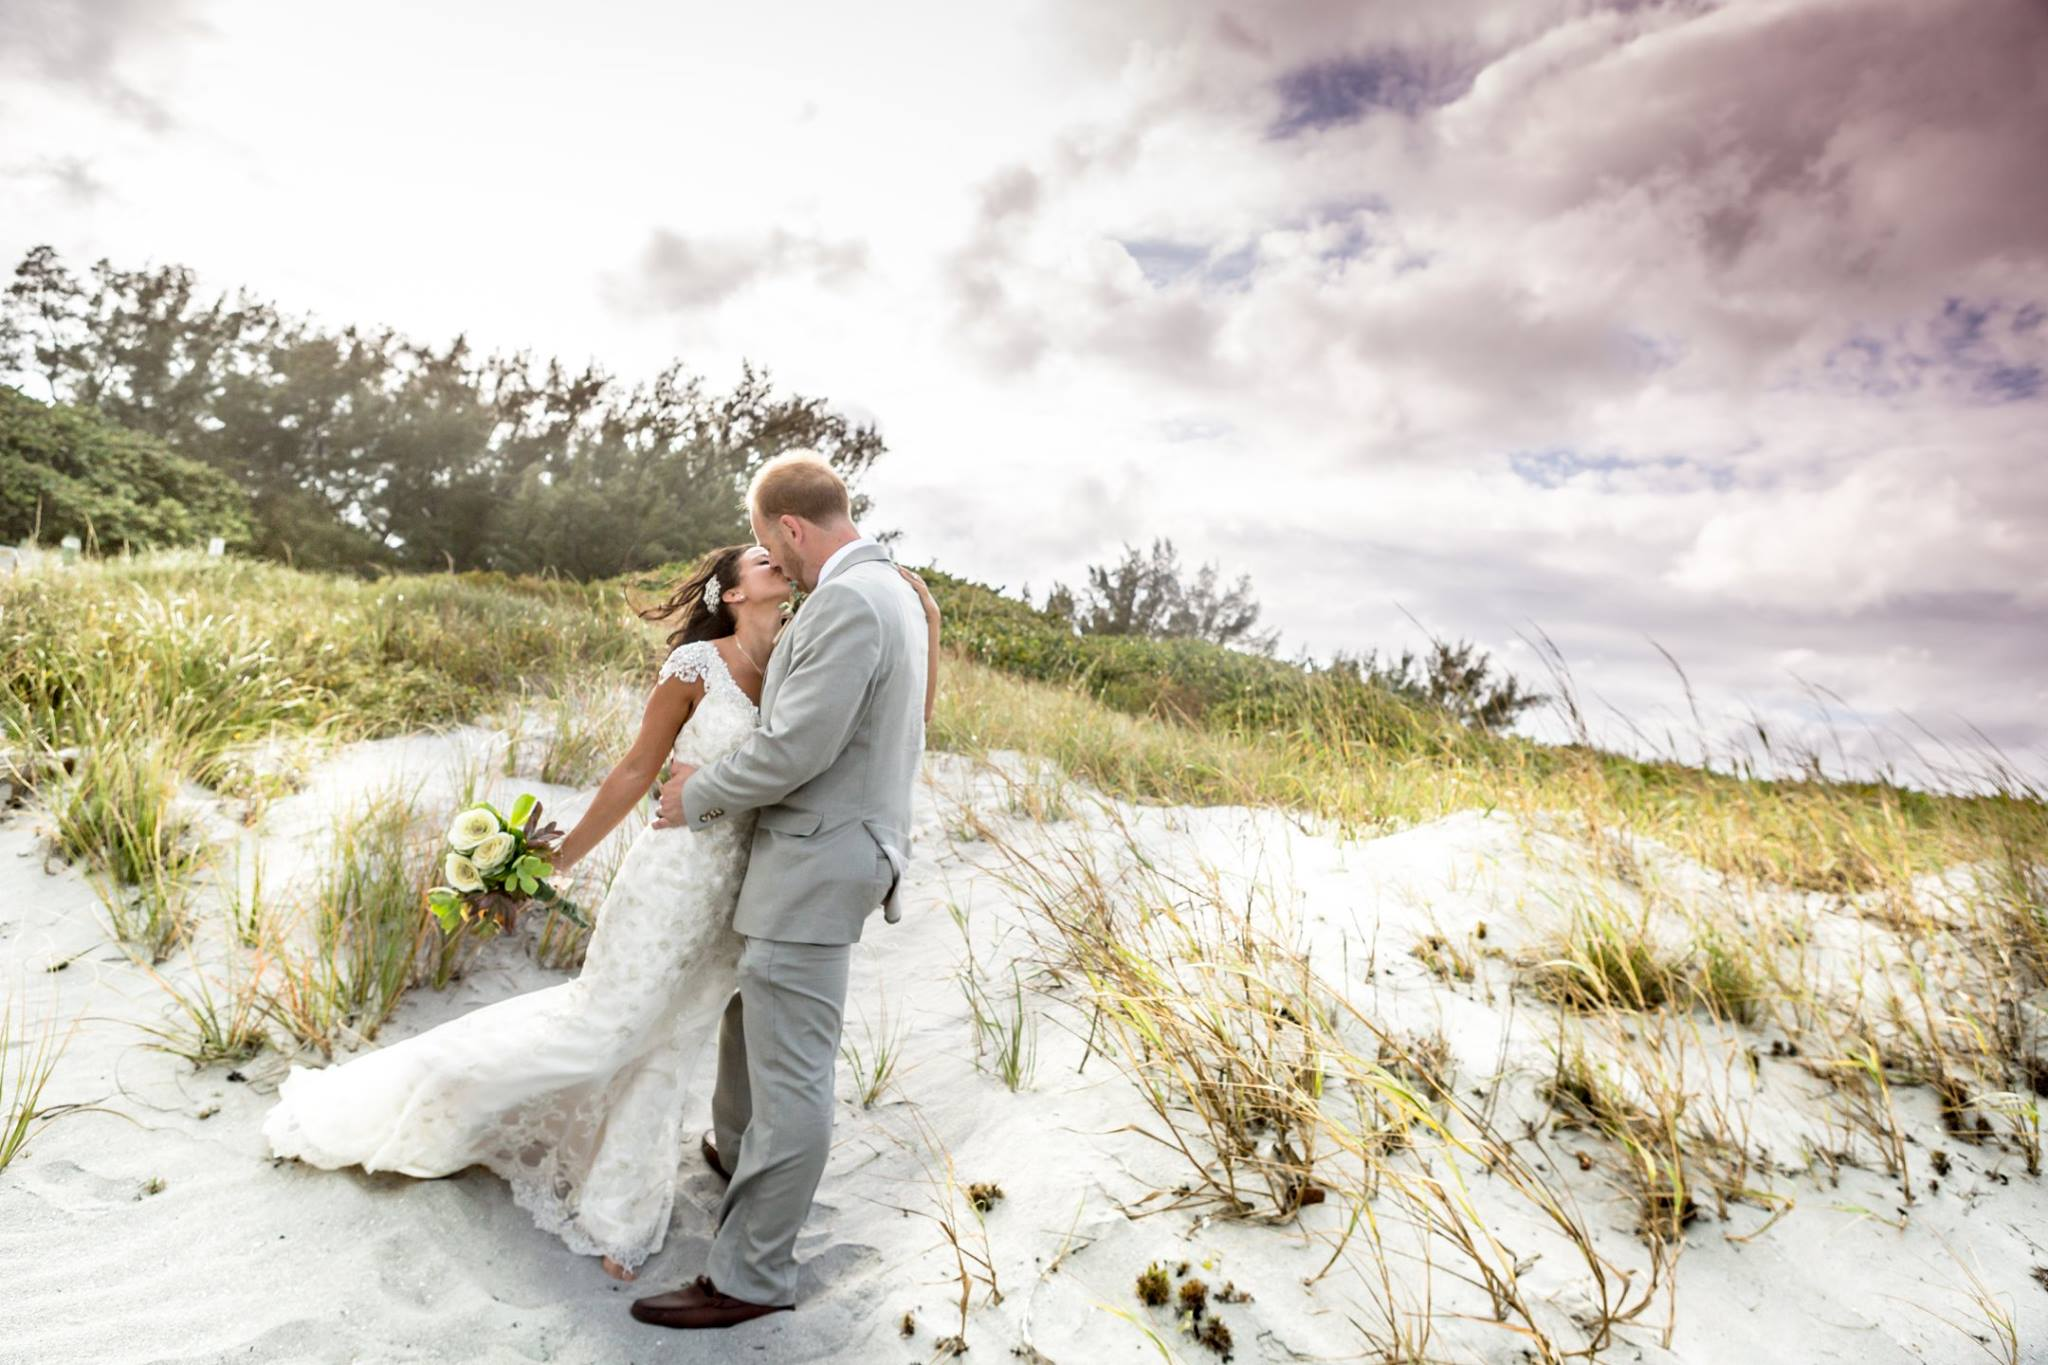 Wedding Photography Videography image of bride and groom on Delray Beach after wedding day ceremony by Fort Lauderdale Photographer Alfredo Valentine Couture Bridal Photography